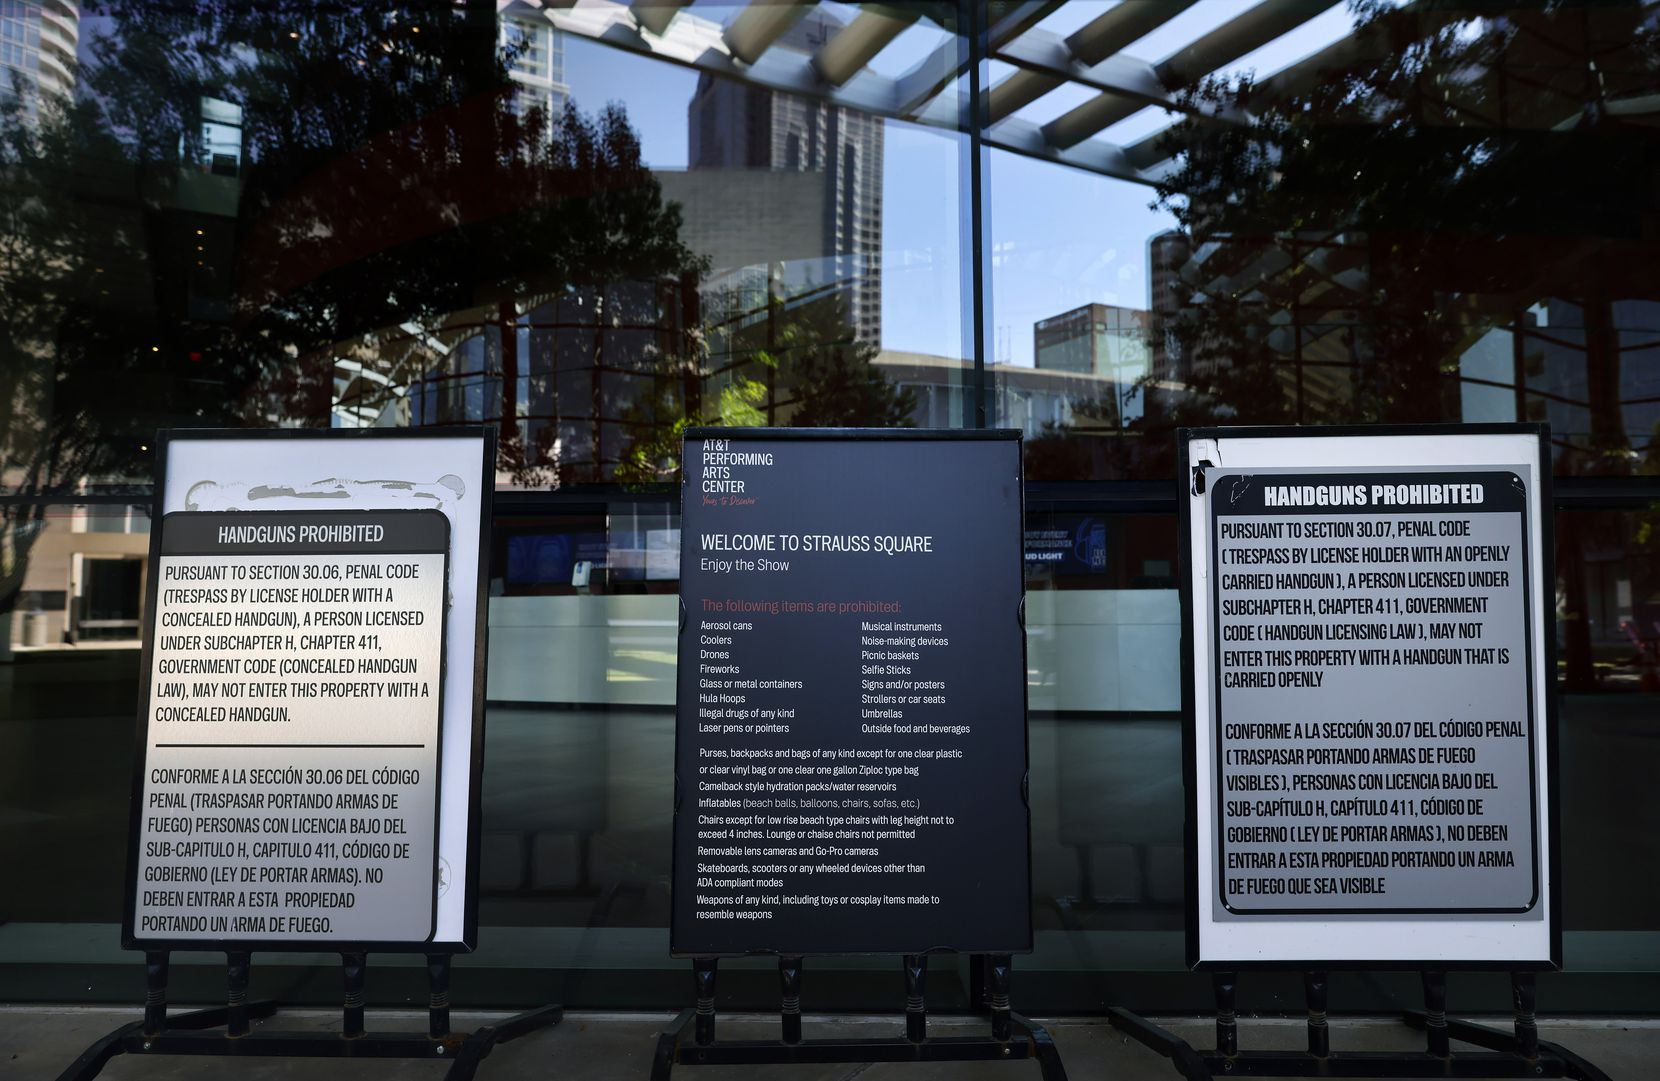 Signs banning patrons at the AT&T Performing Arts Center from carrying weapons on premises are shown on Aug. 31.